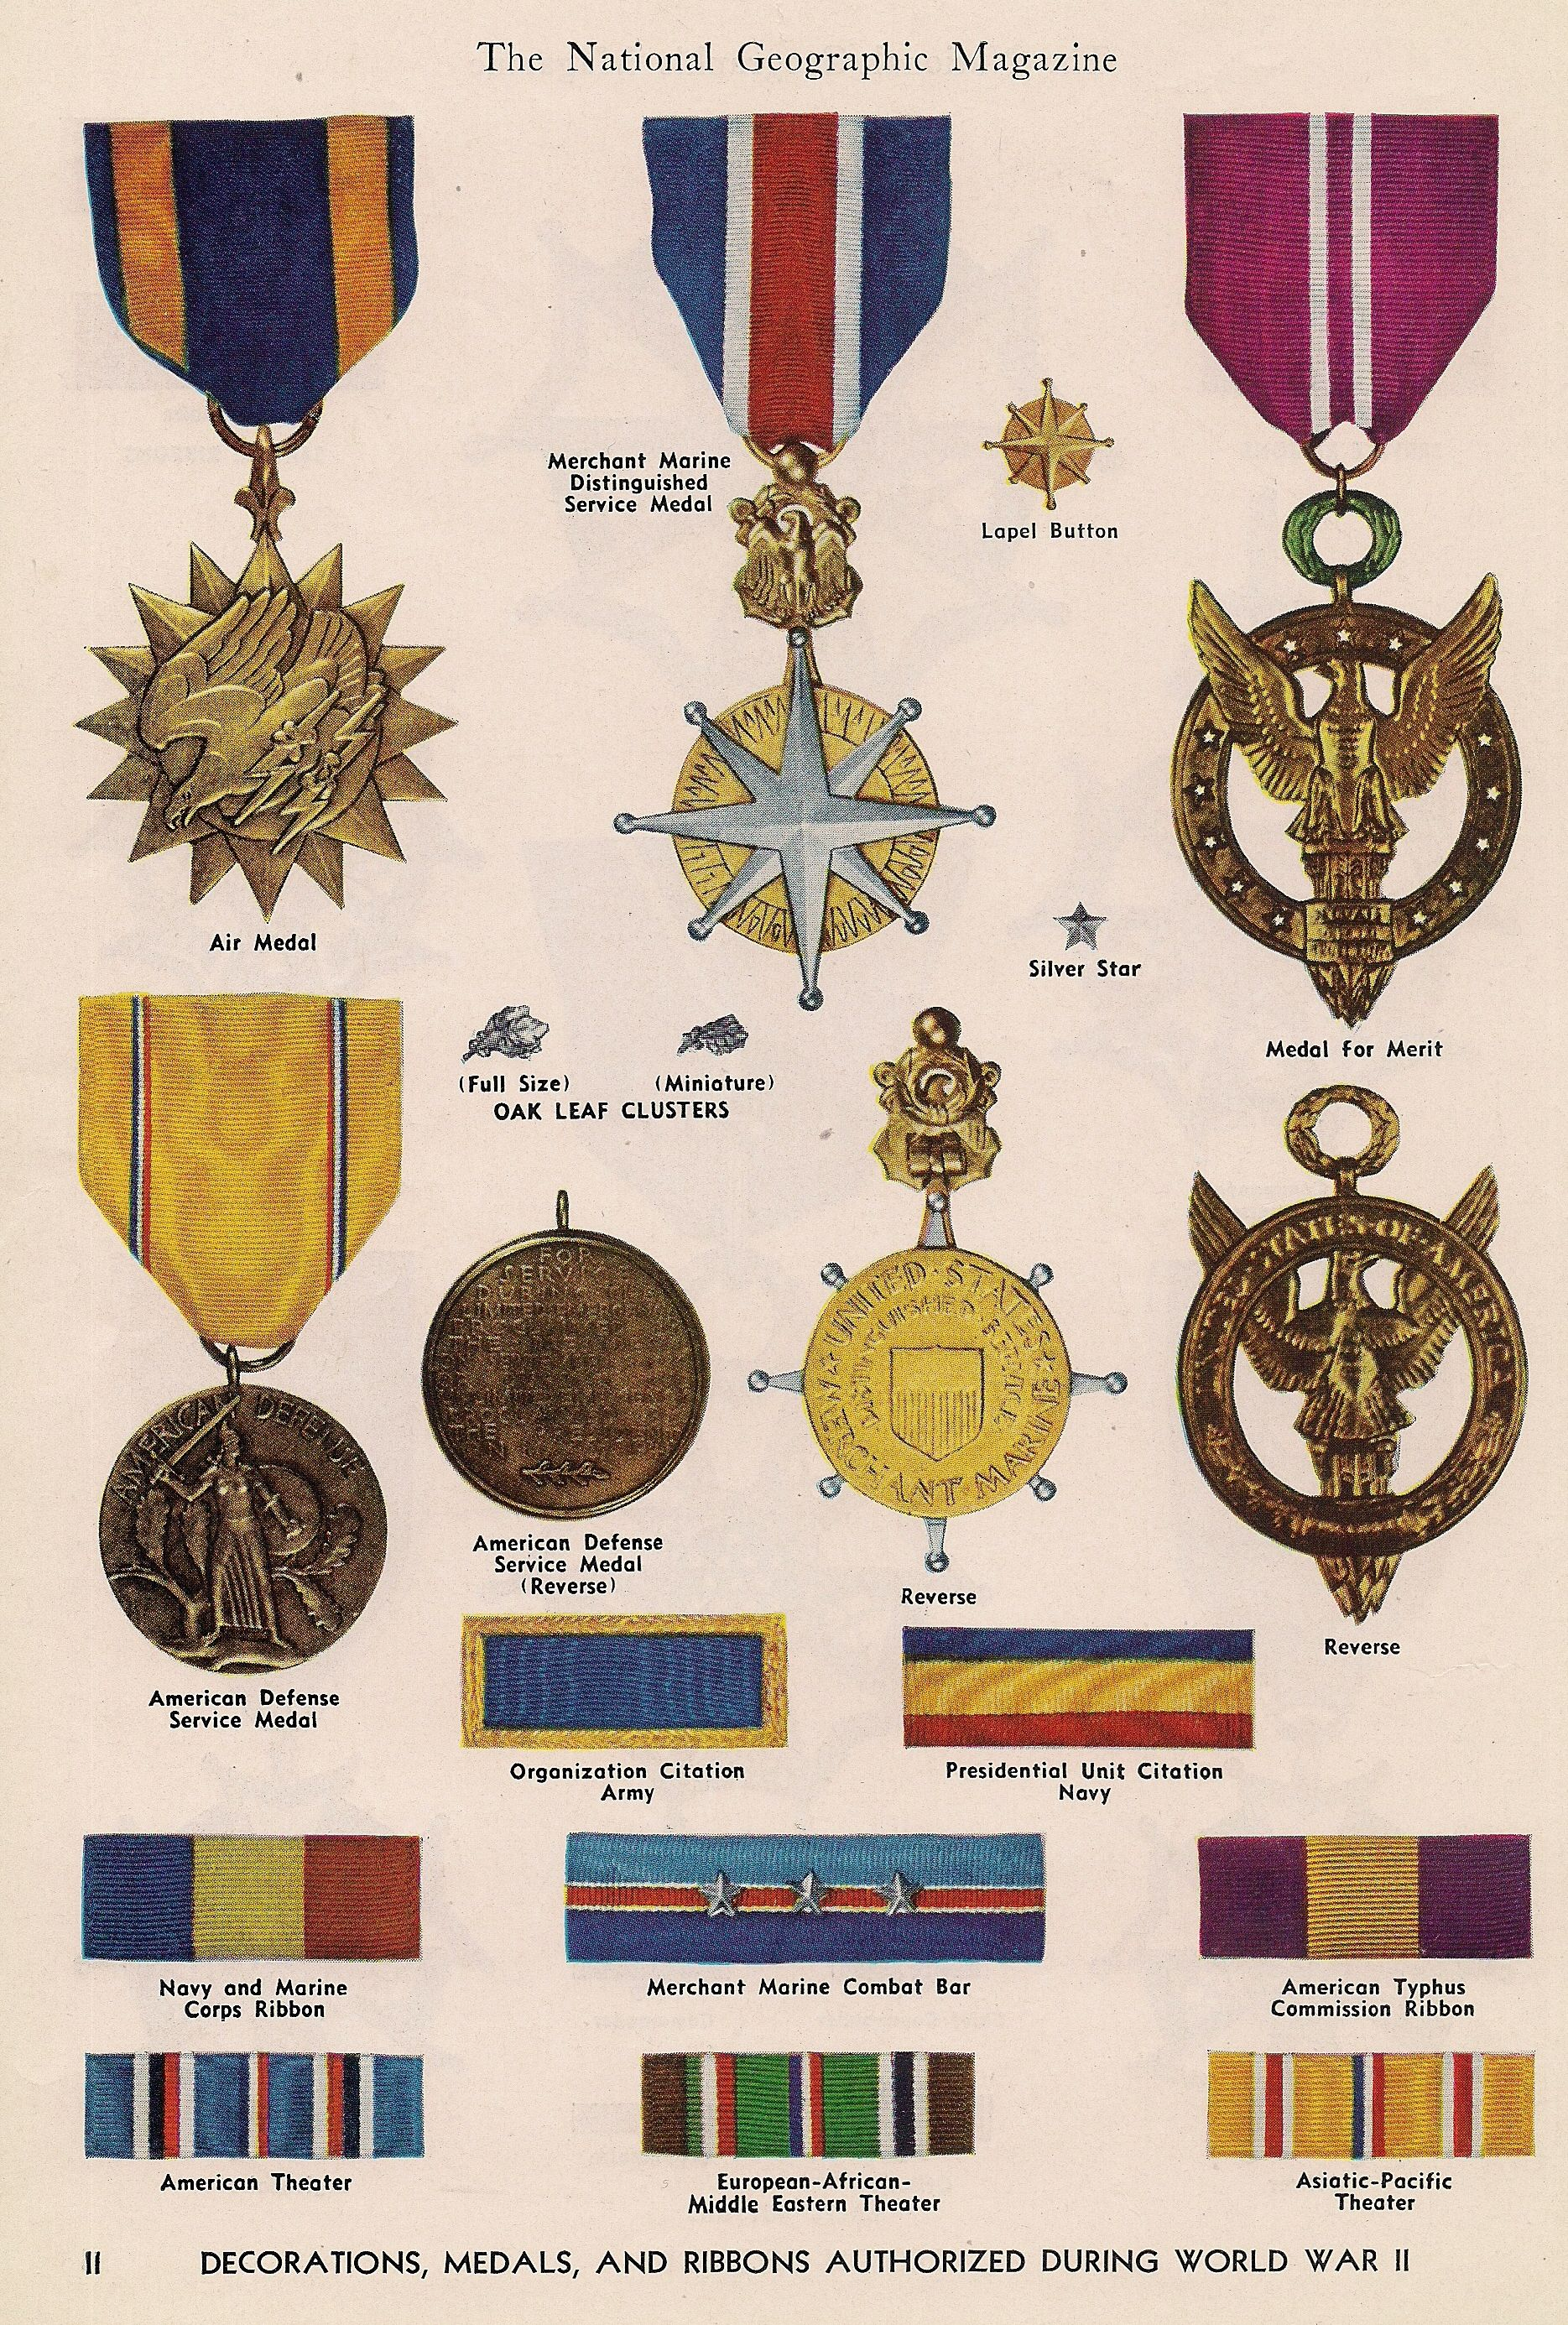 military decoded alfred photos and medals decoration decorations hilsbg decor rascon hero summit